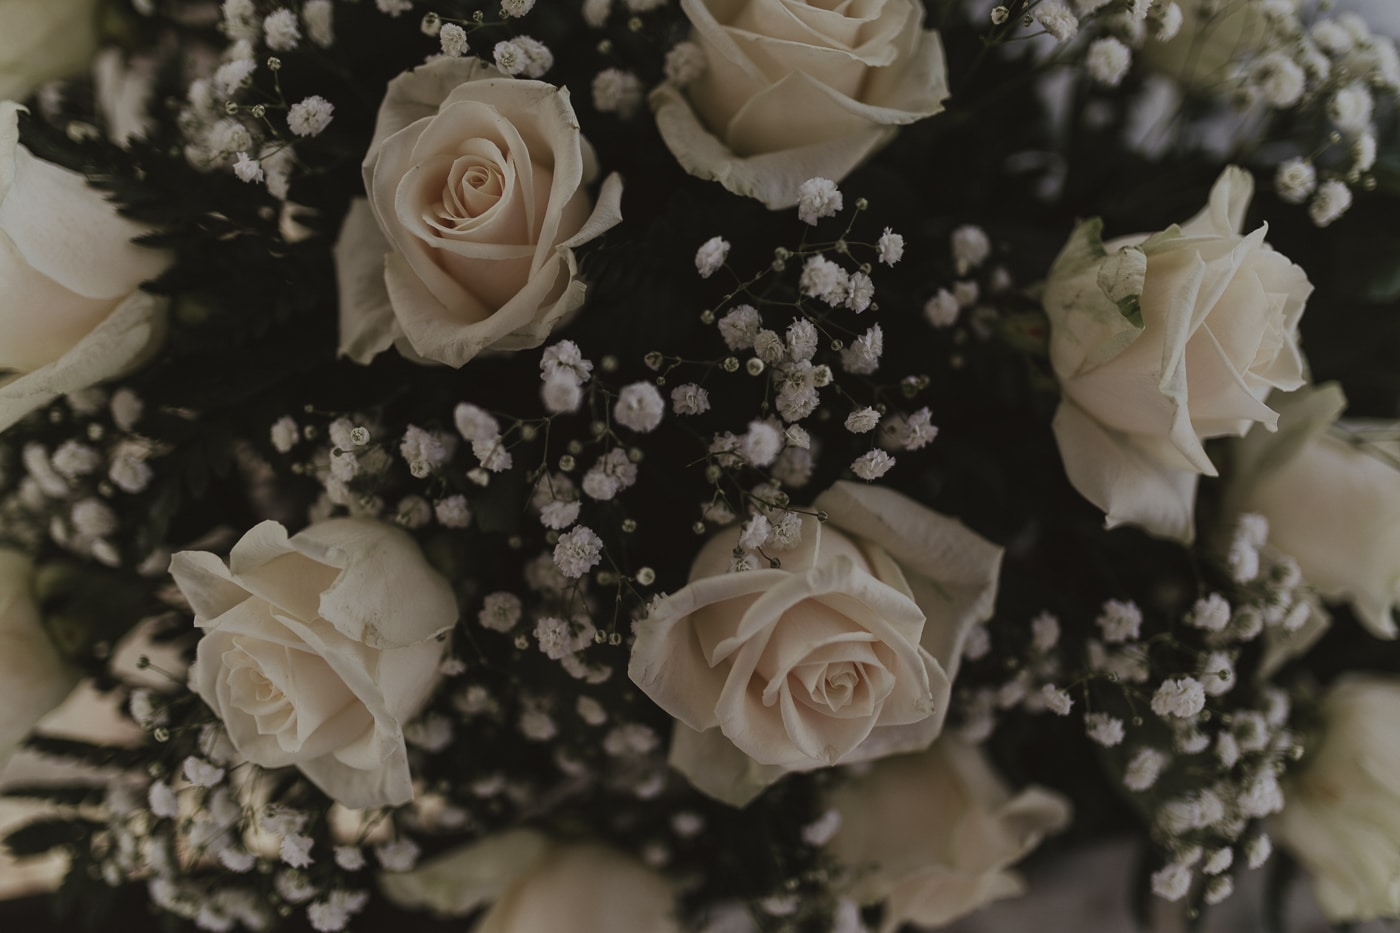 Close up picture of white roses and small white flowers